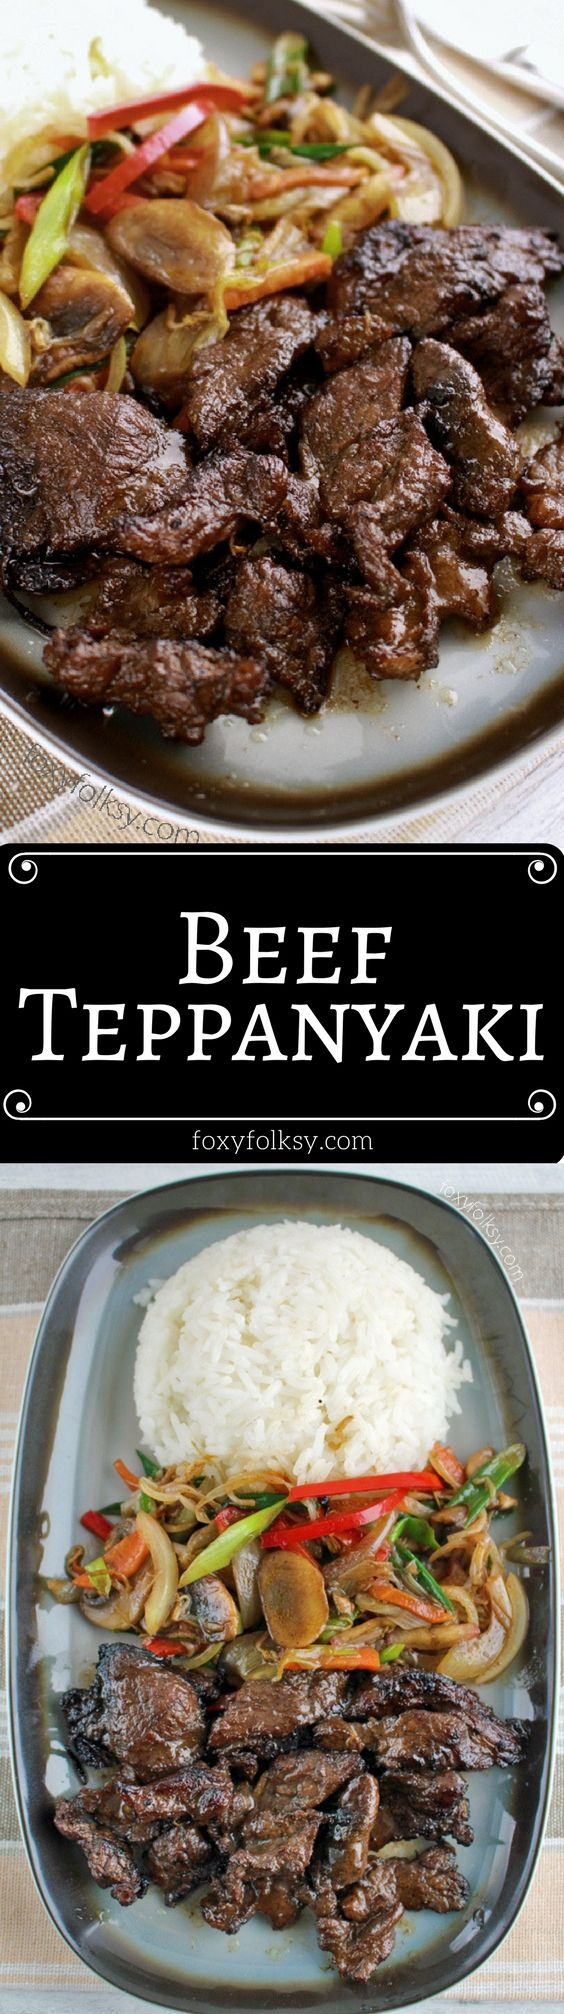 Make this beef teppanyaki at home without using a teppan. So easy and yummy! | www.foxyfolksy.com